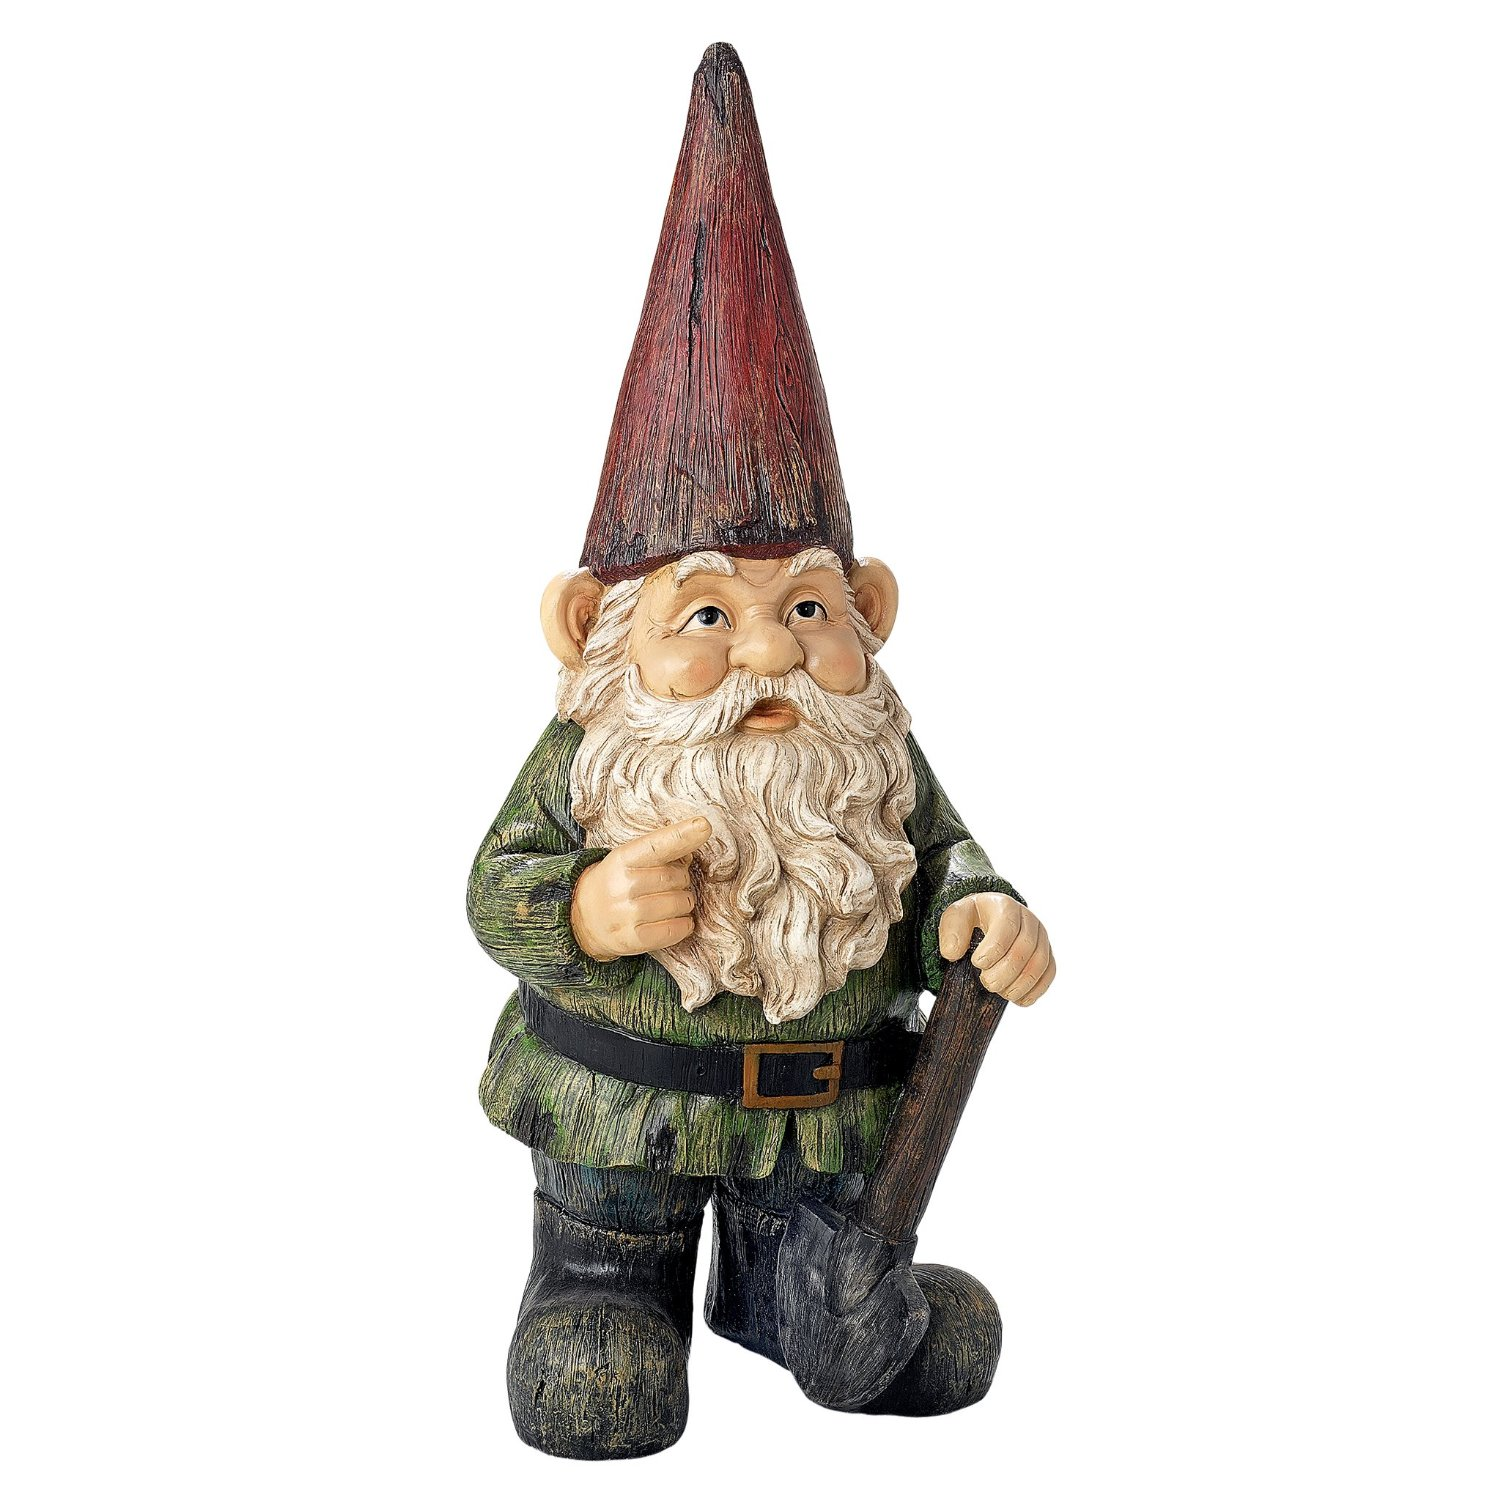 cheap garden gnomes. Garden Gnome Statue - Gottfried The Gigantic Outdoor Gnomes Lawn Cheap